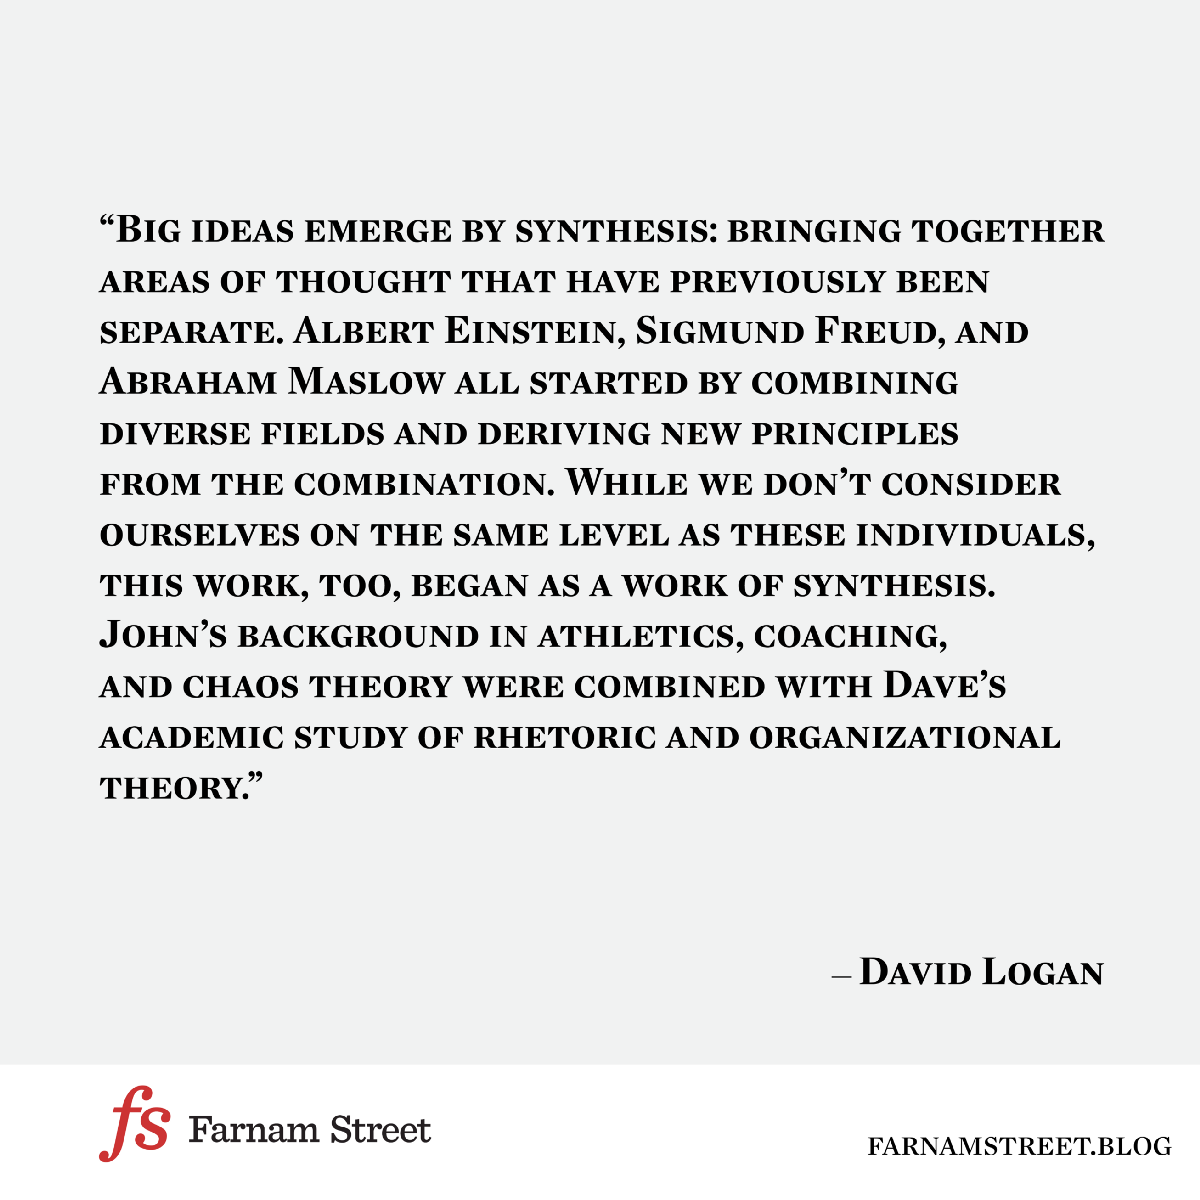 Big Ideas Emerge By Synthesis